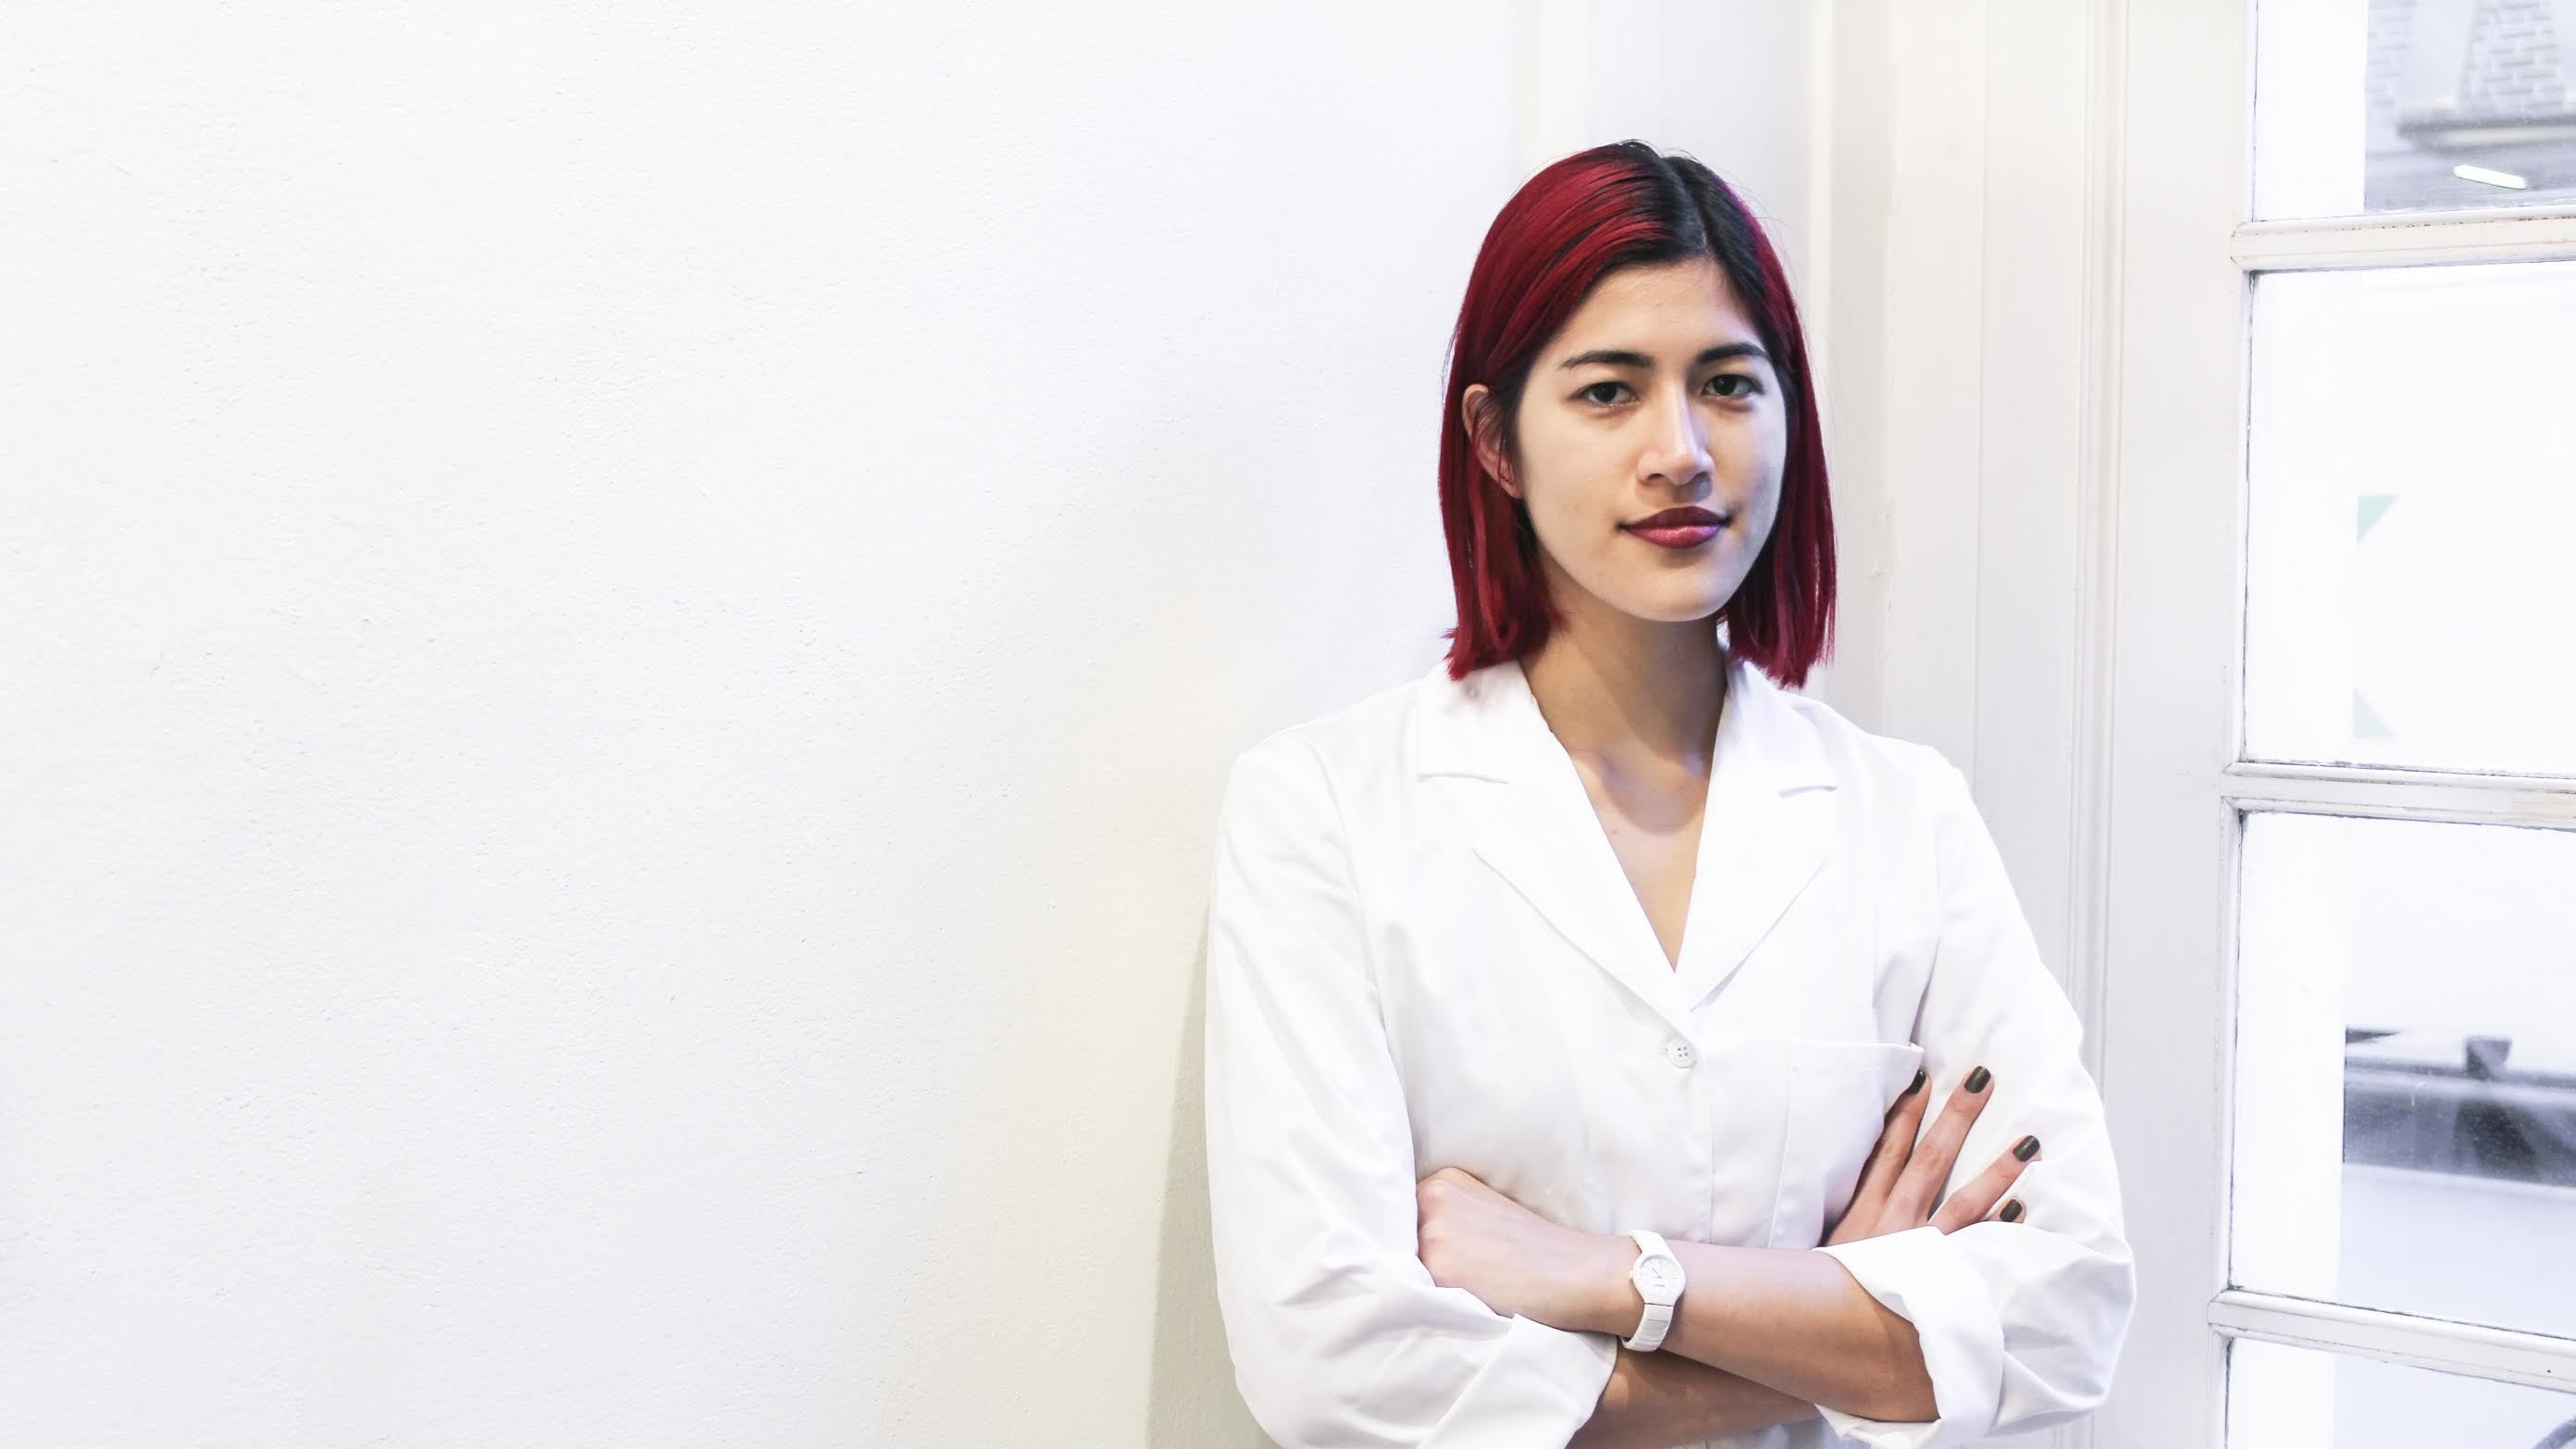 dr. emma sulkowicz is healing her patients (and haters) with art